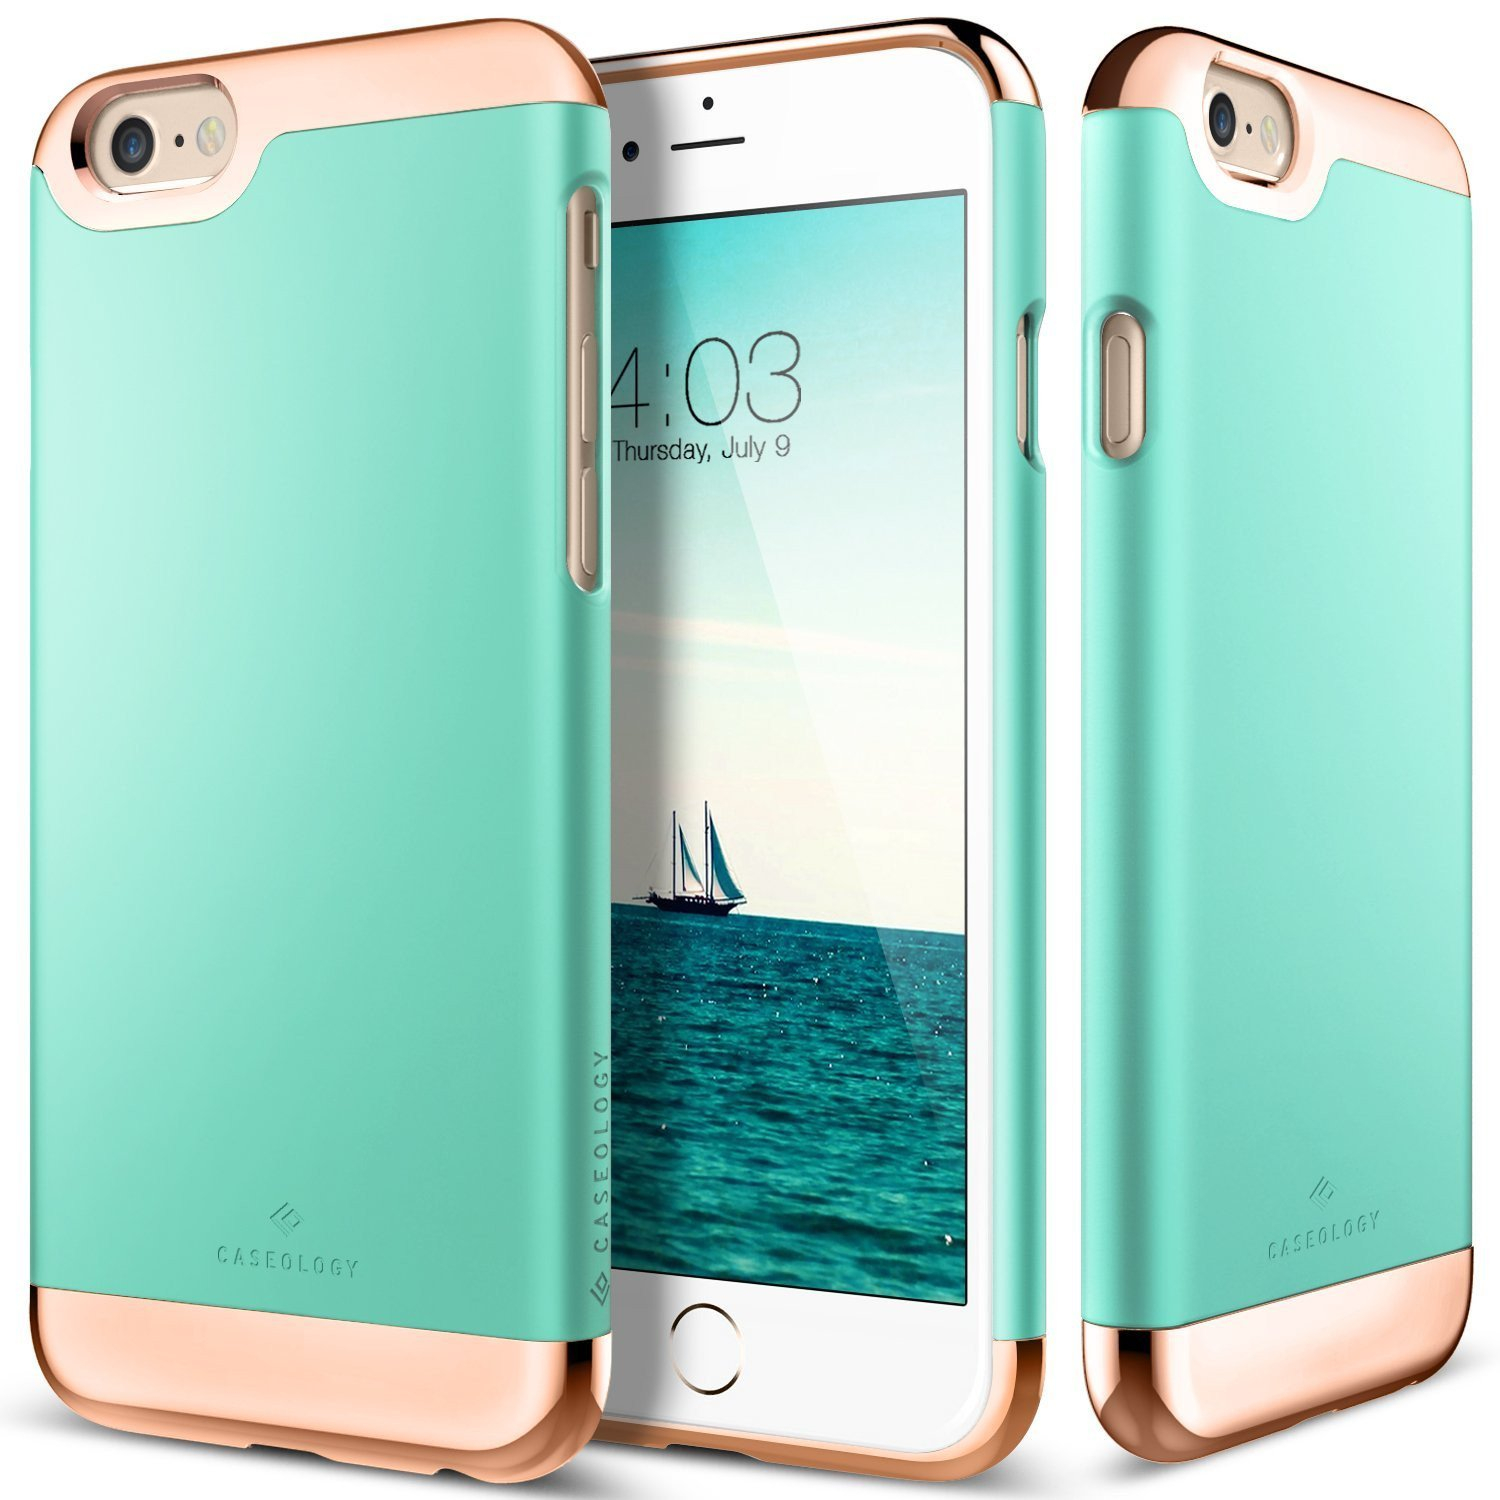 Image of The Turquoise Mint and Gold Dual Layer Slider / Soft Interior Cover iPhone 6/6s or 6/6s Plus Case